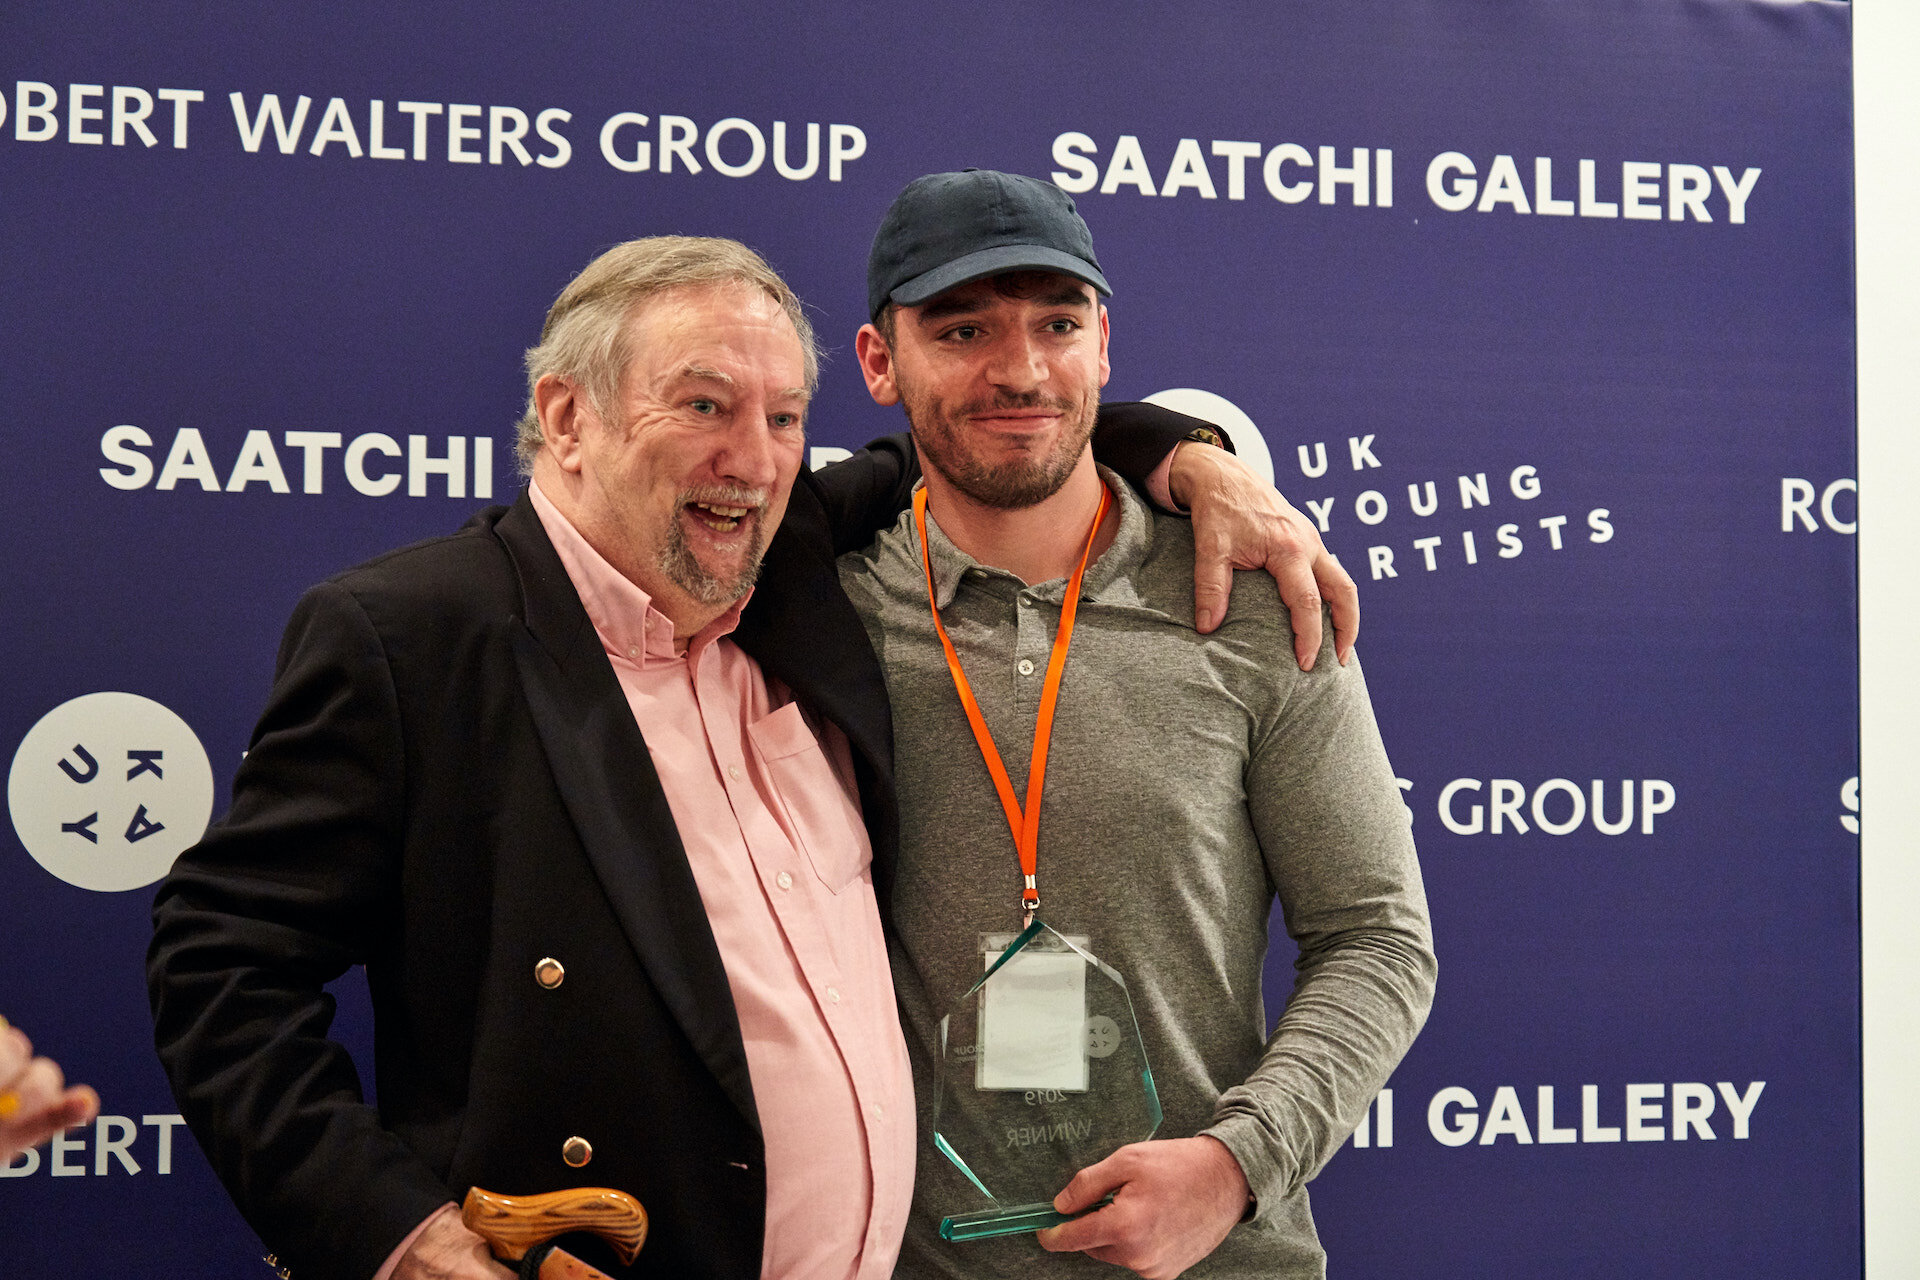 07.10.19 - UK Young Artist of the Year Award-179.jpg